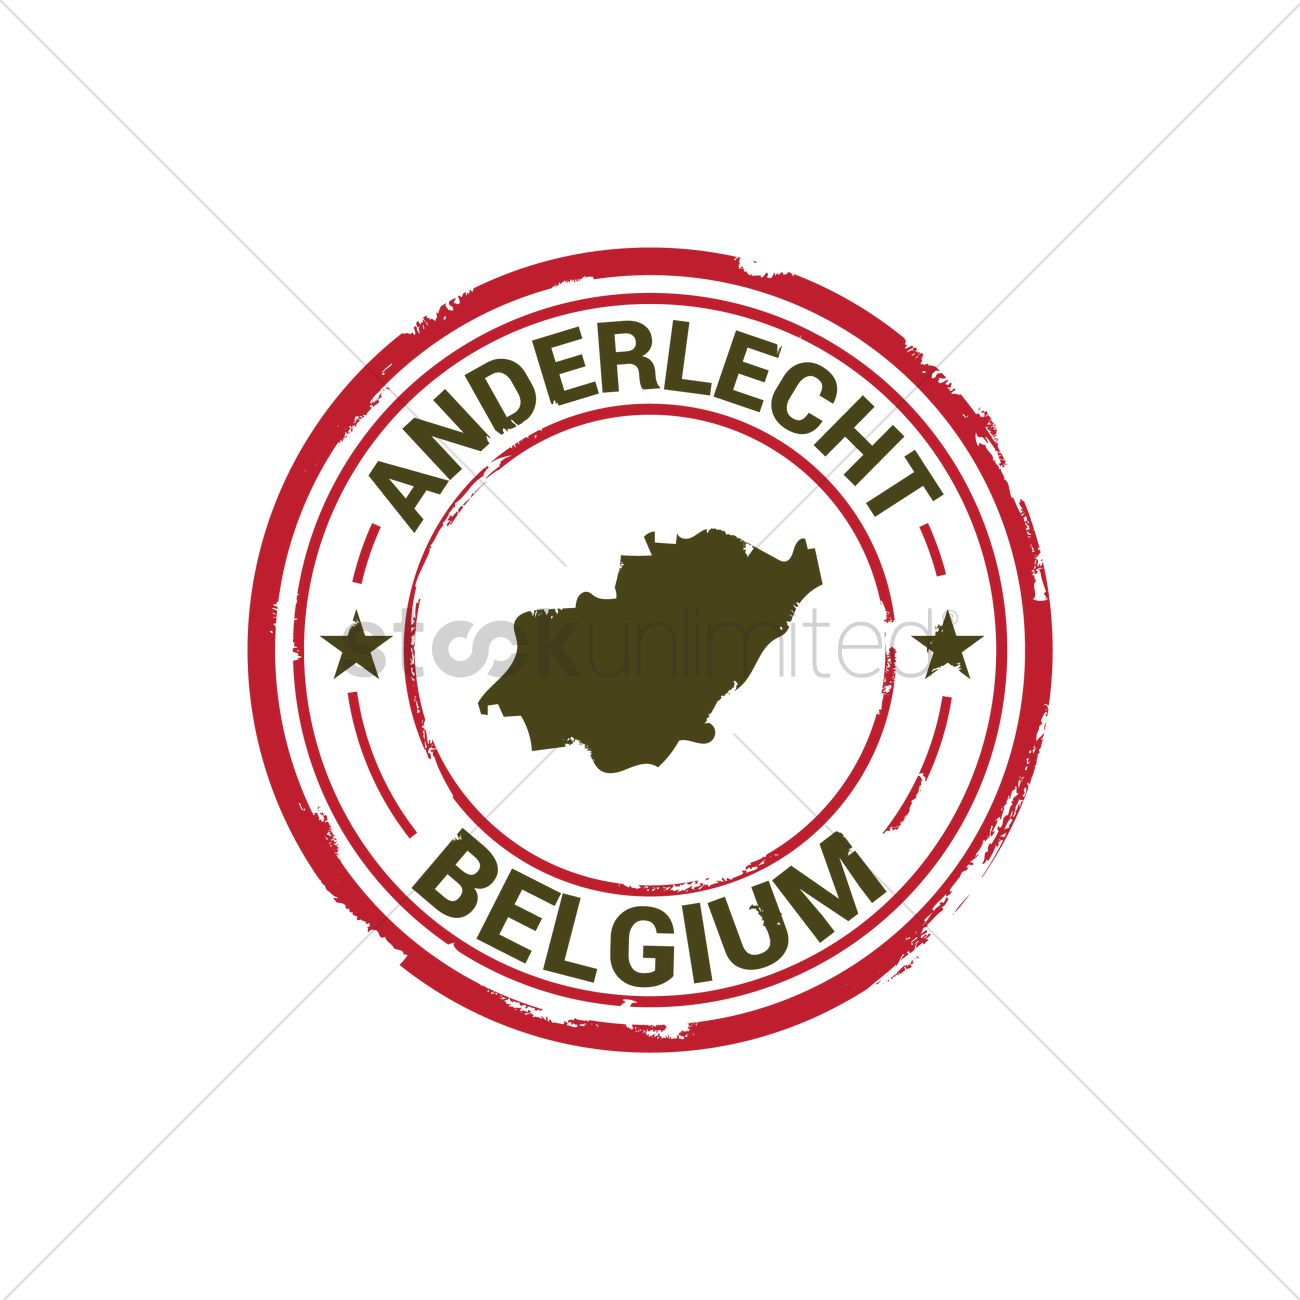 Anderlecht map stamp Vector Image 1581464 StockUnlimited